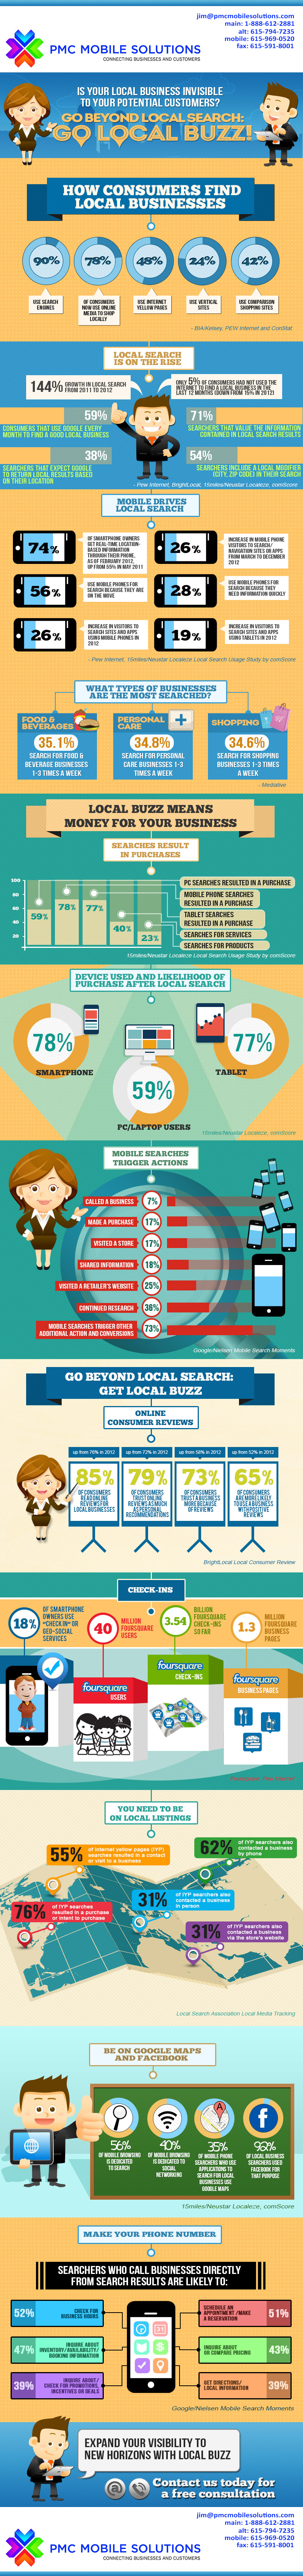 PMCMobileSolutions.com-Local-Buzz-Infographic-2013